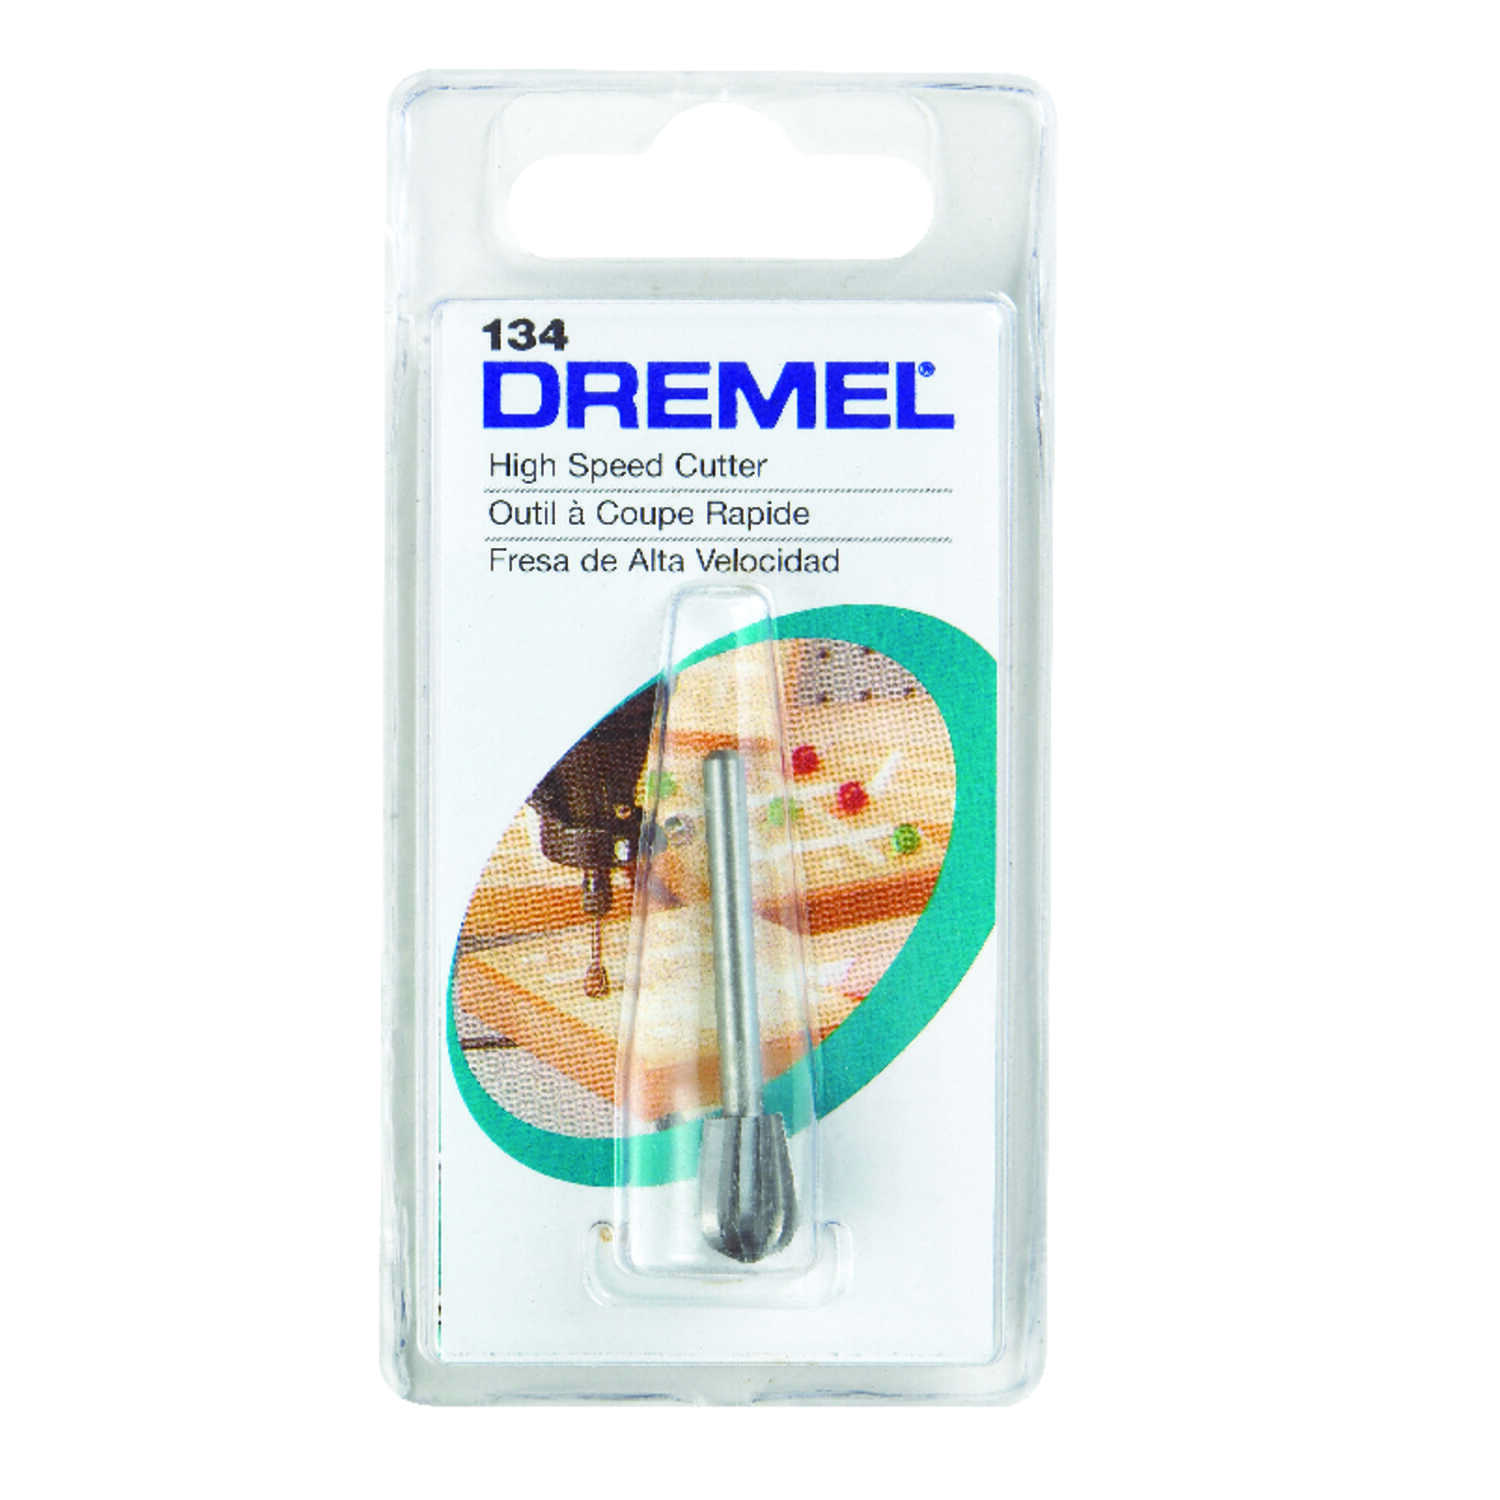 Dremel  5/16 in   x 1.5 in. L x 1/8 in. Dia. Steel  High Speed Cutter  1 pk